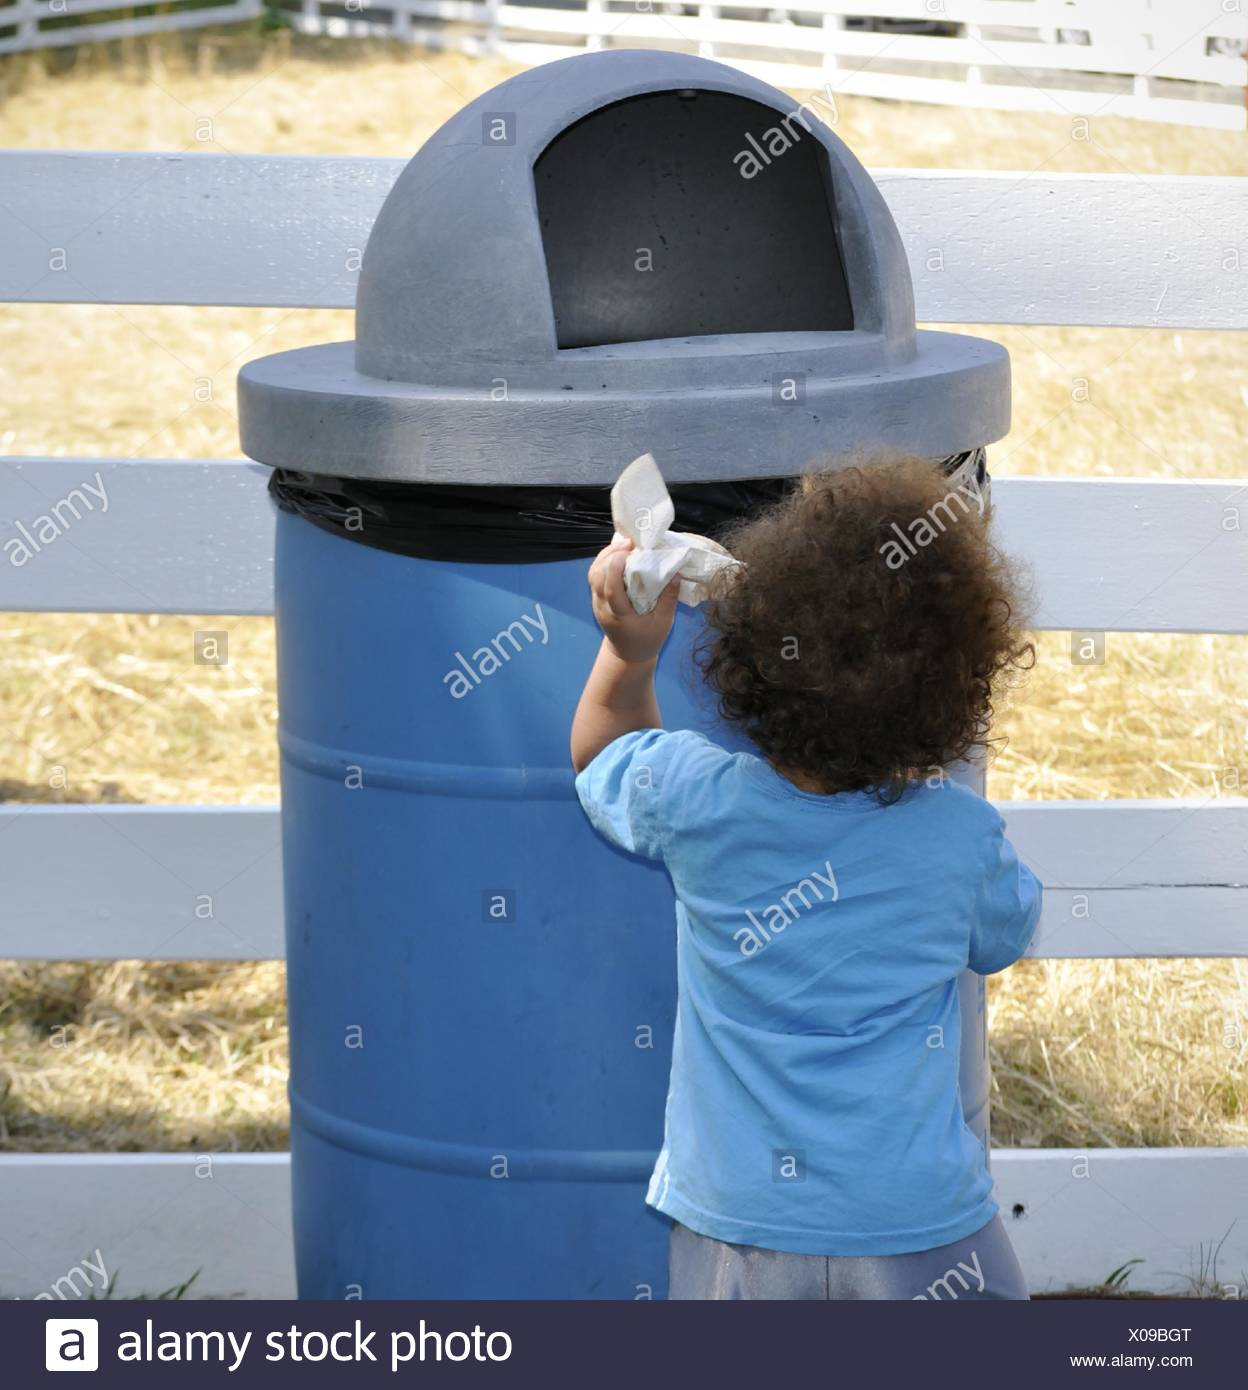 Trash Can Child Stock Photos & Trash Can Child Stock Images - Alamy